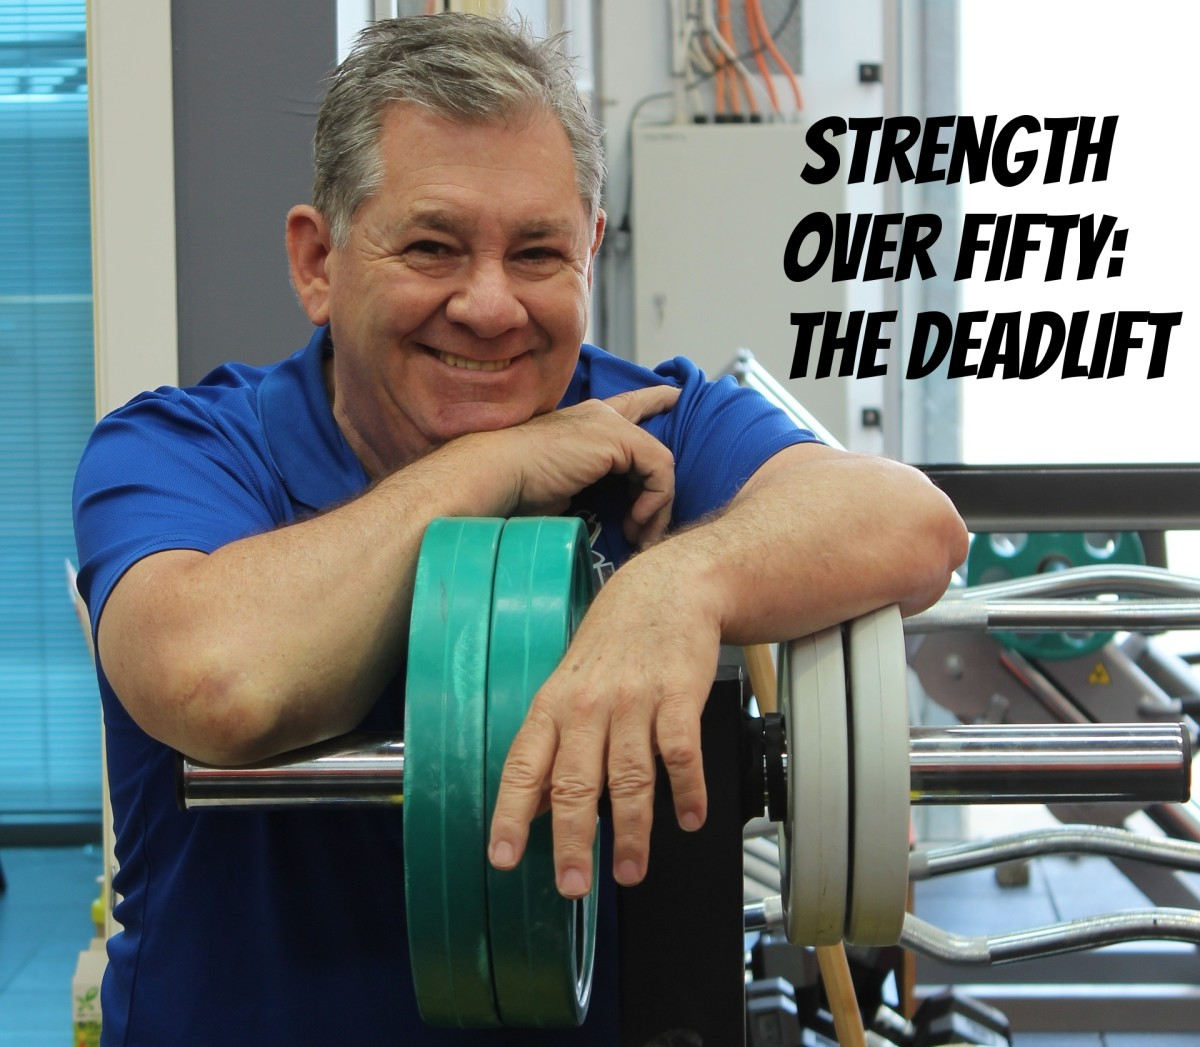 Strength Over Fifty: How the Deadlift Makes Older People Stronger